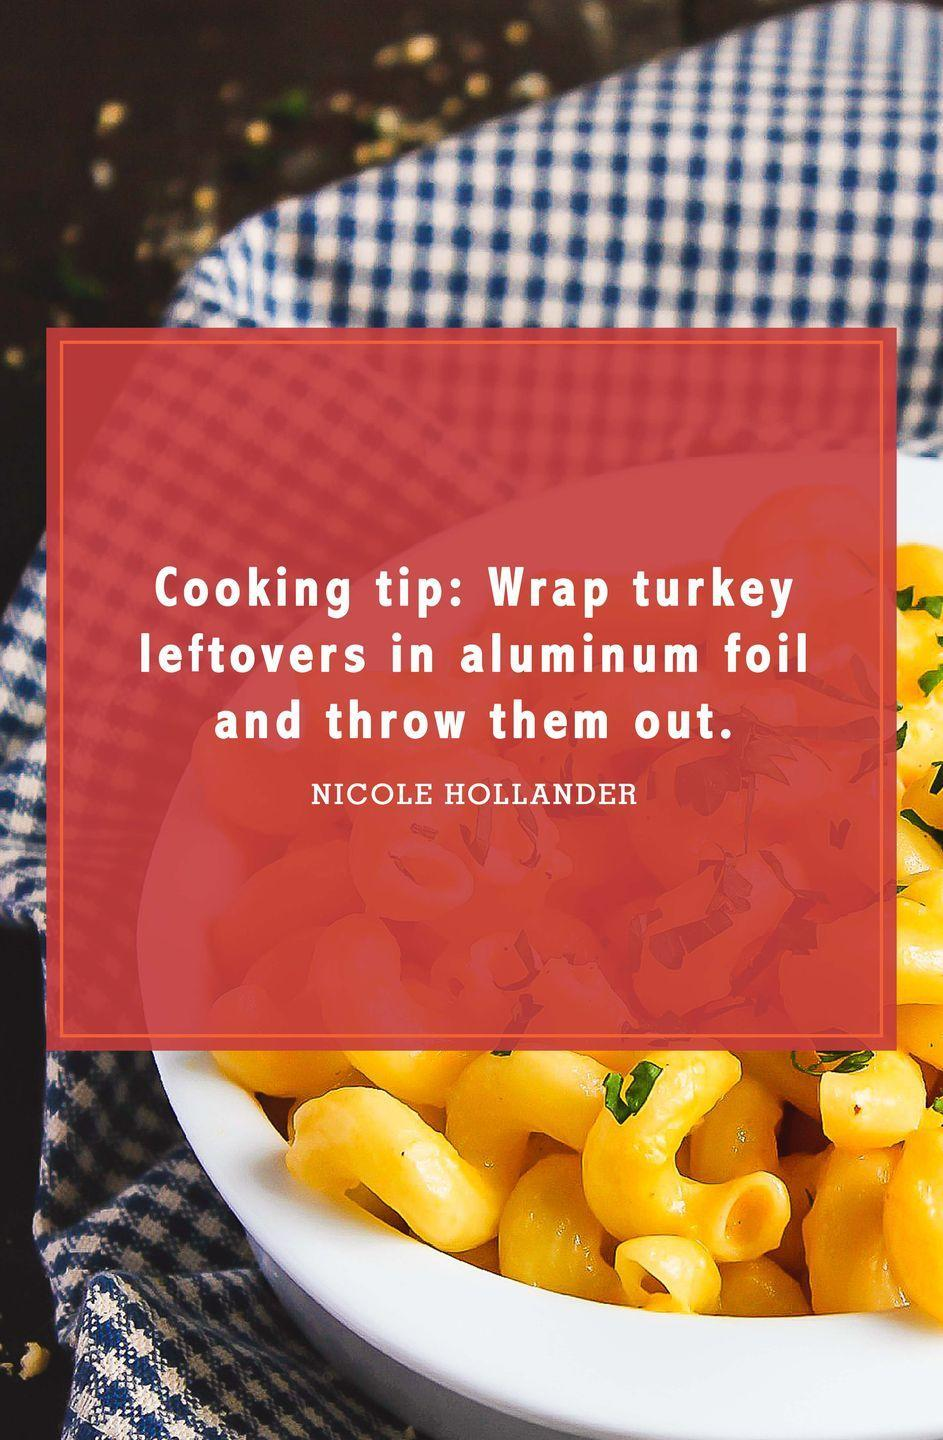 """<p>""""Cooking tip: Wrap turkey leftovers in aluminum foil and throw them out.""""</p>"""